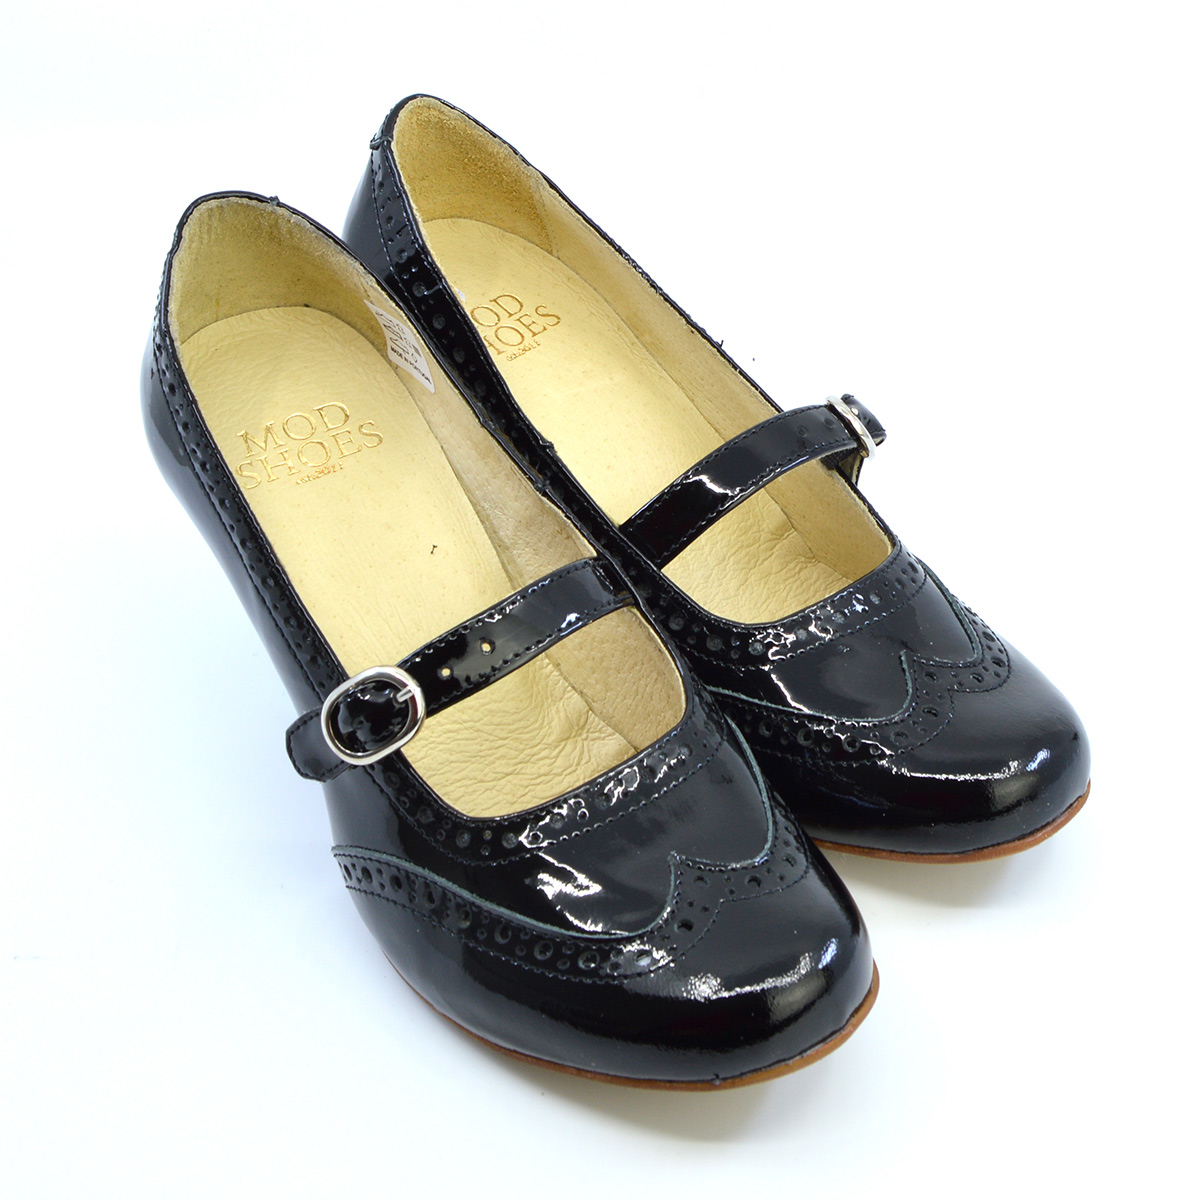 The Penny – Black Patent Leather Mary